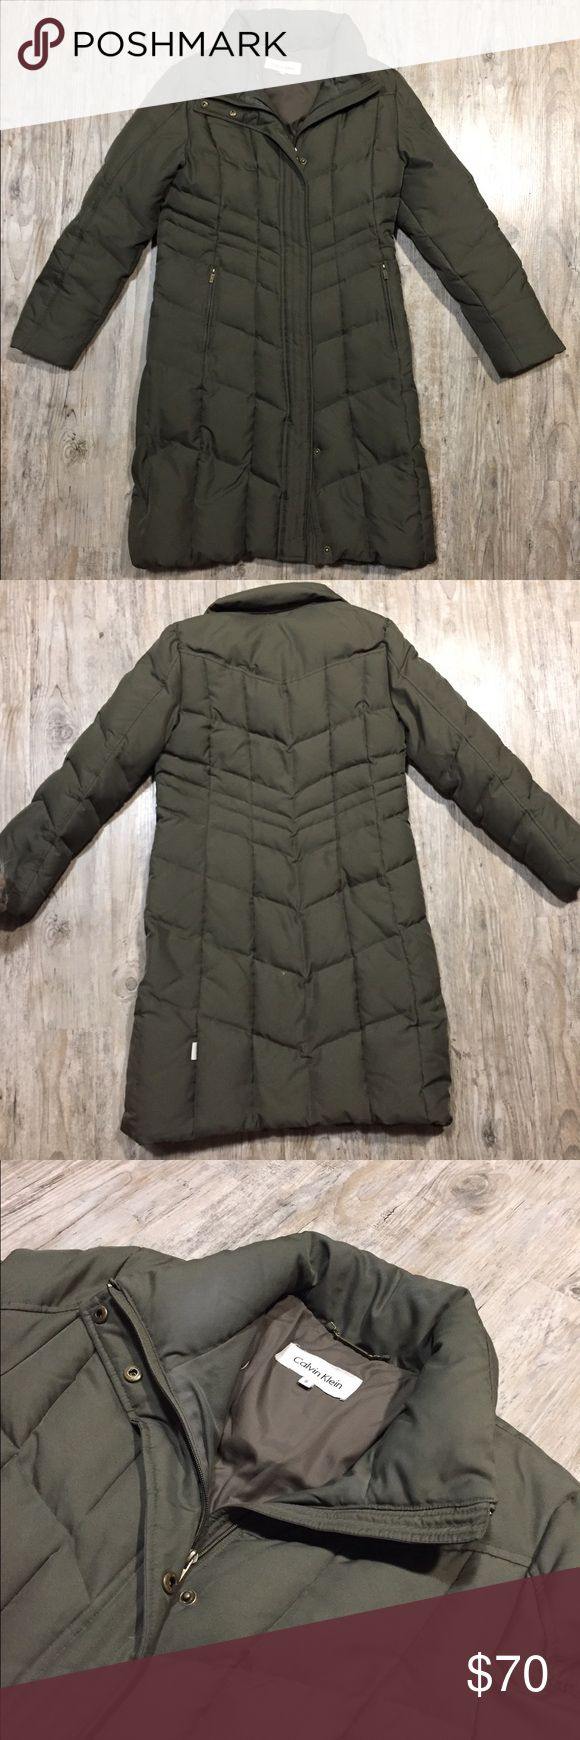 Calvin Klein Women's Puffer Coat Size small, excellent used condition with no flaws. Calvin Klein Jackets & Coats Puffers